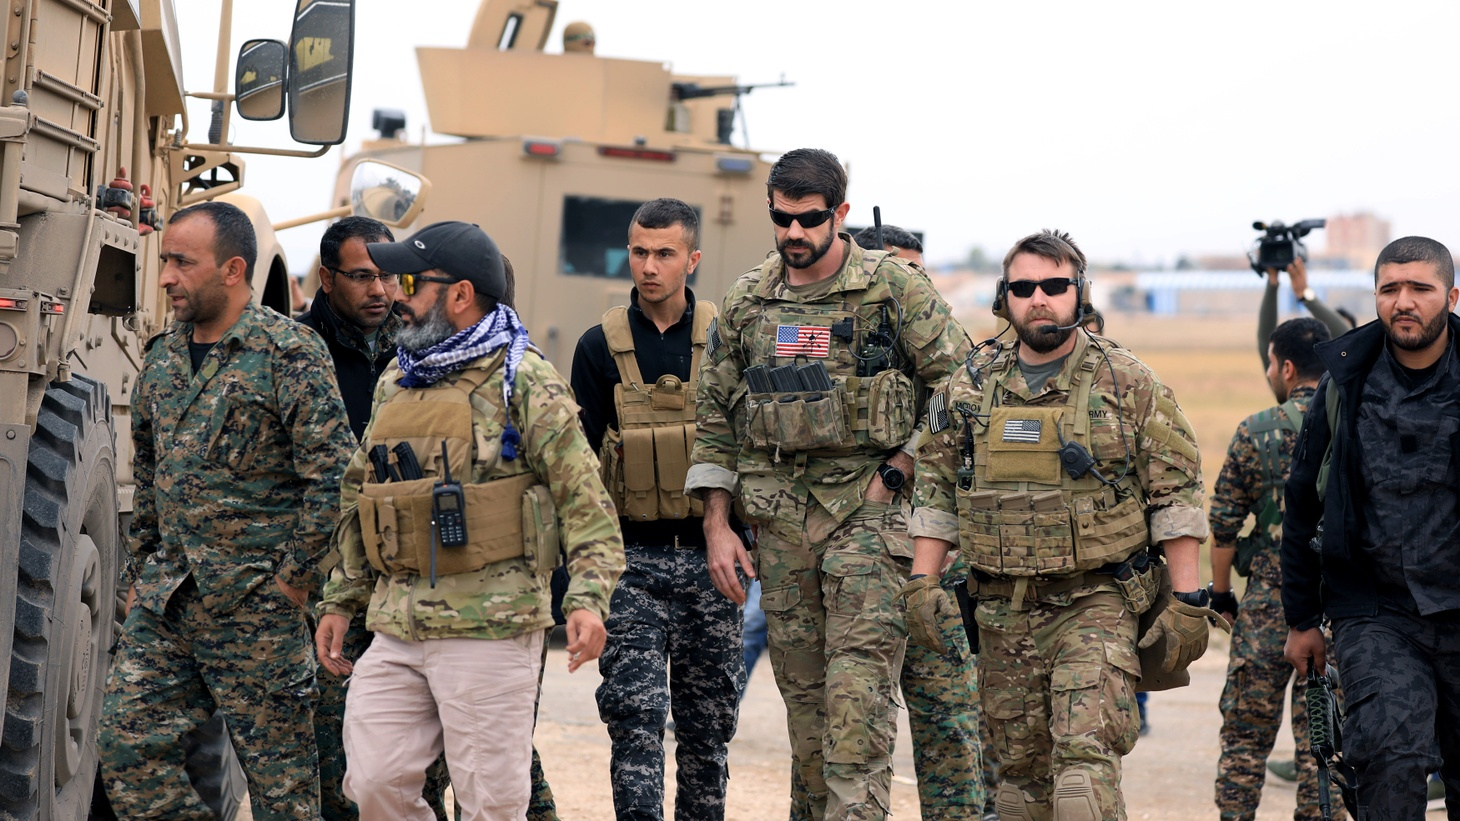 Syrian Democratic forces and U.S. troops during a patrol near the Turkish border in Hasakah, Syria. November 4, 2018.